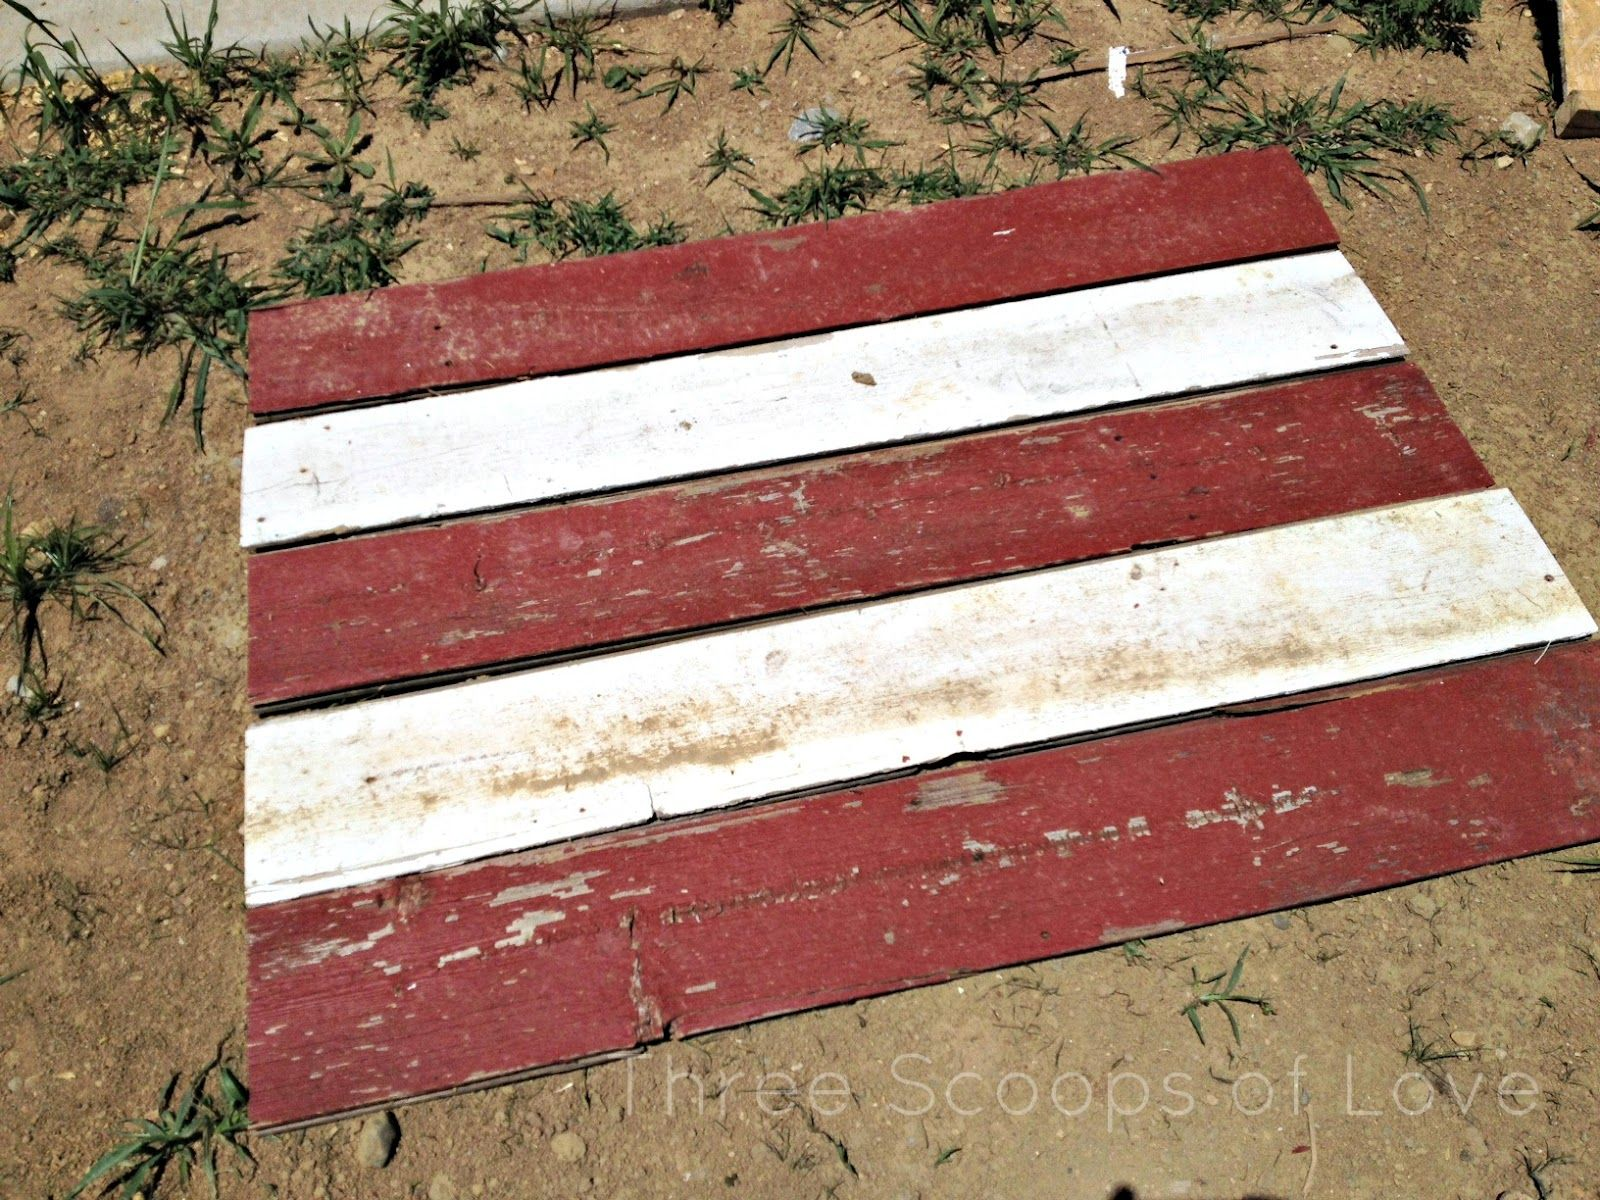 Three Scoops of Love: Barnwood American Flag